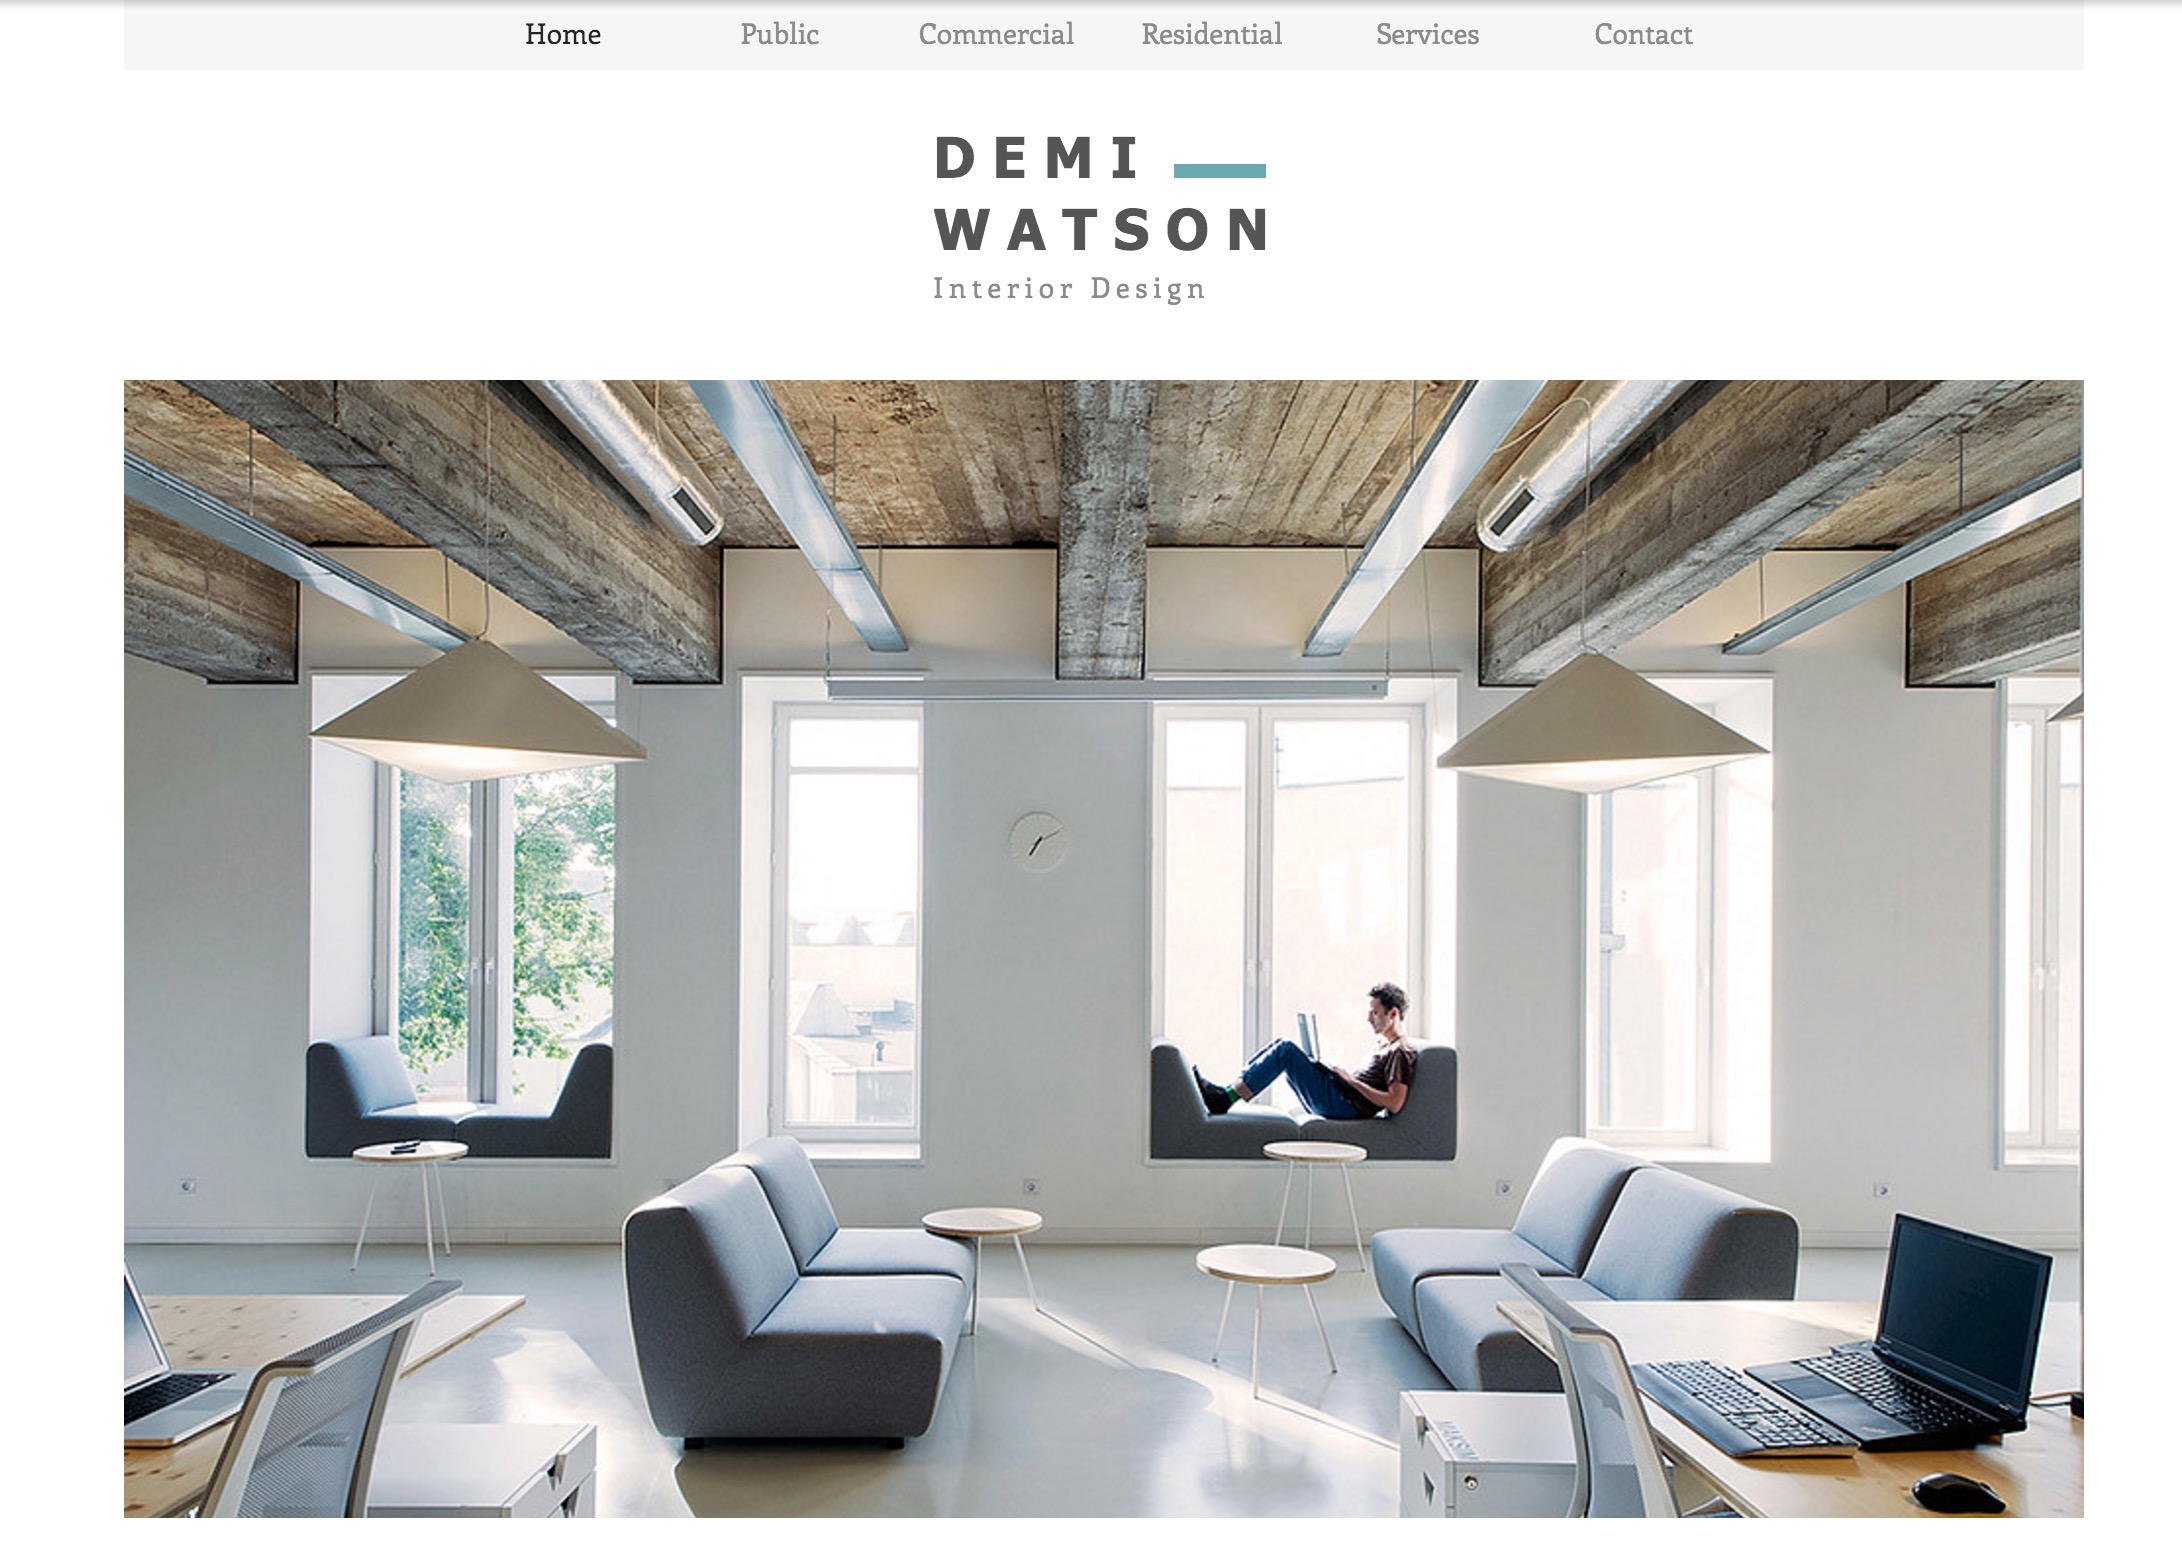 57 stunning wix website themes and templates for Top interior design websites